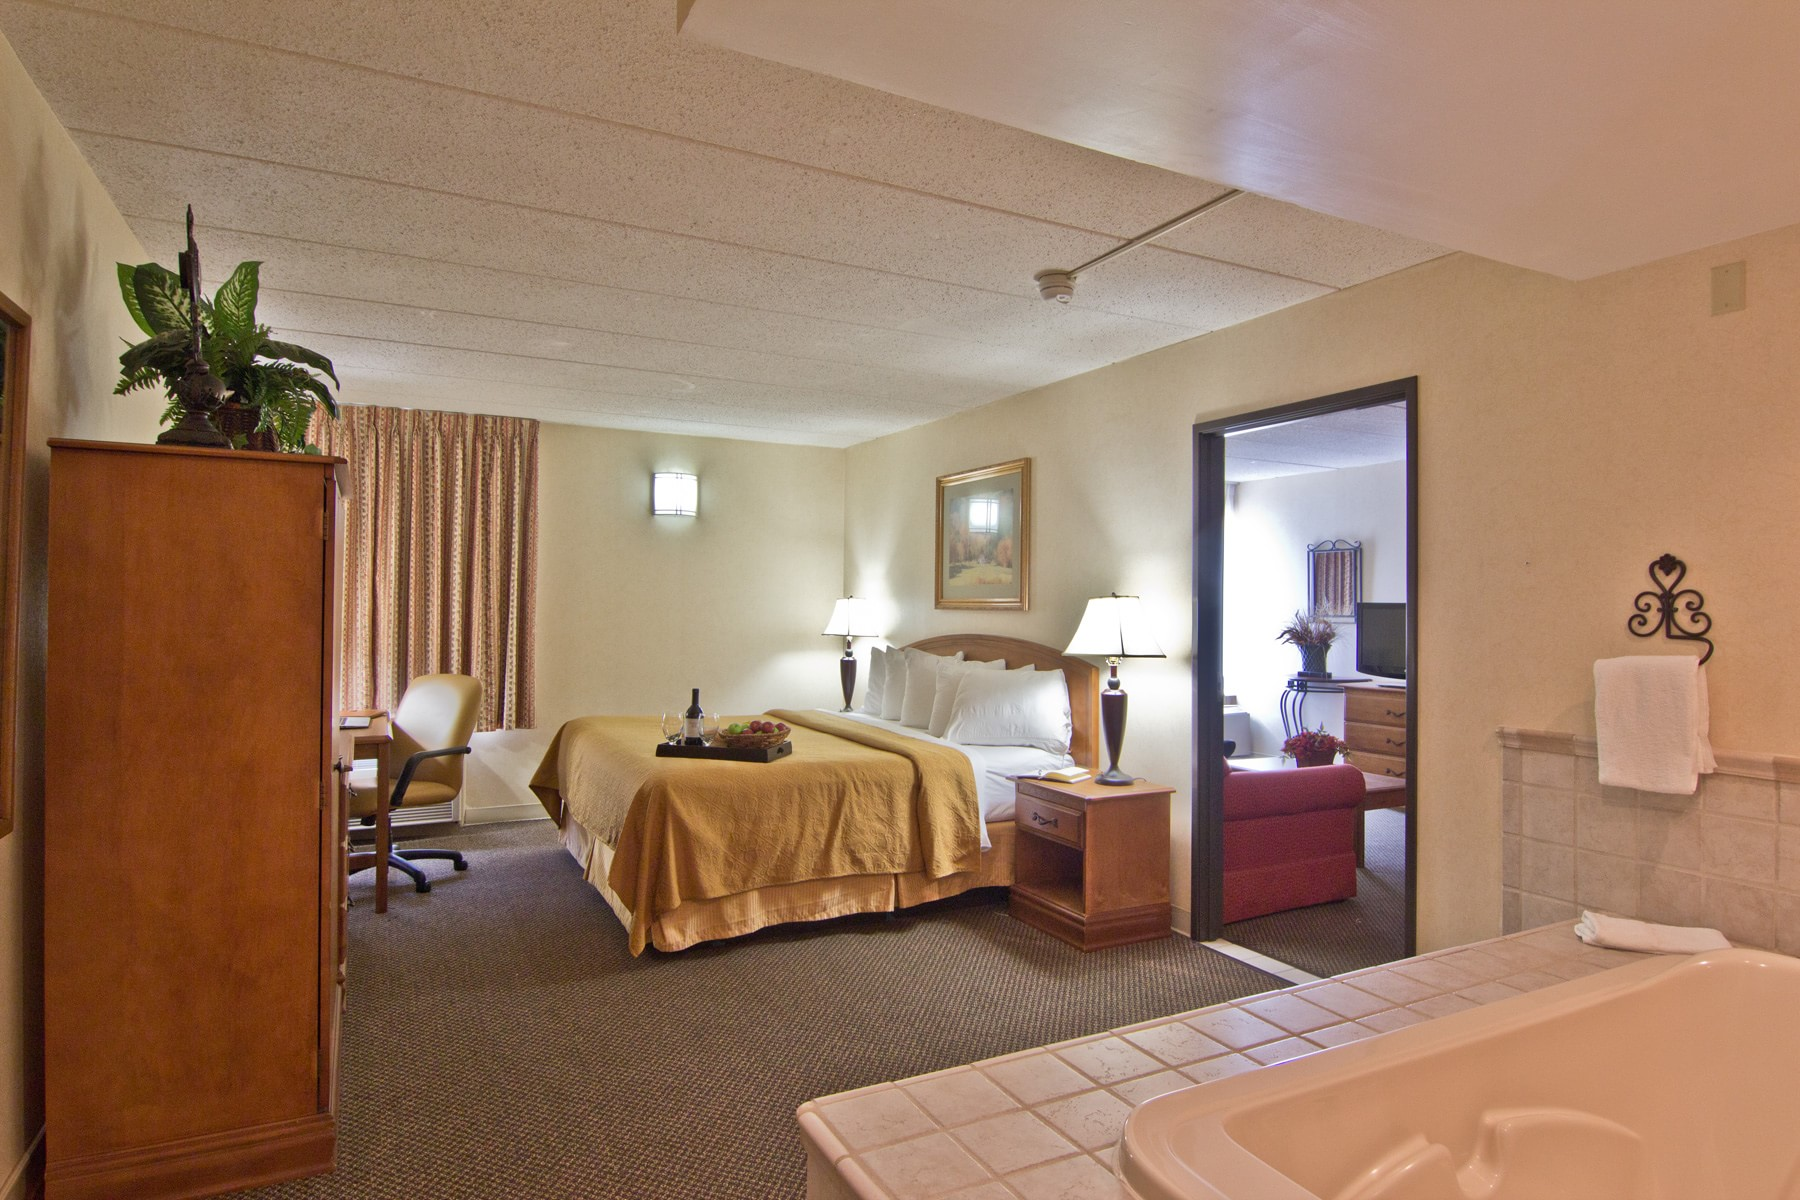 Hotels With Jacuzzi In Room In Chillicothe Ohio